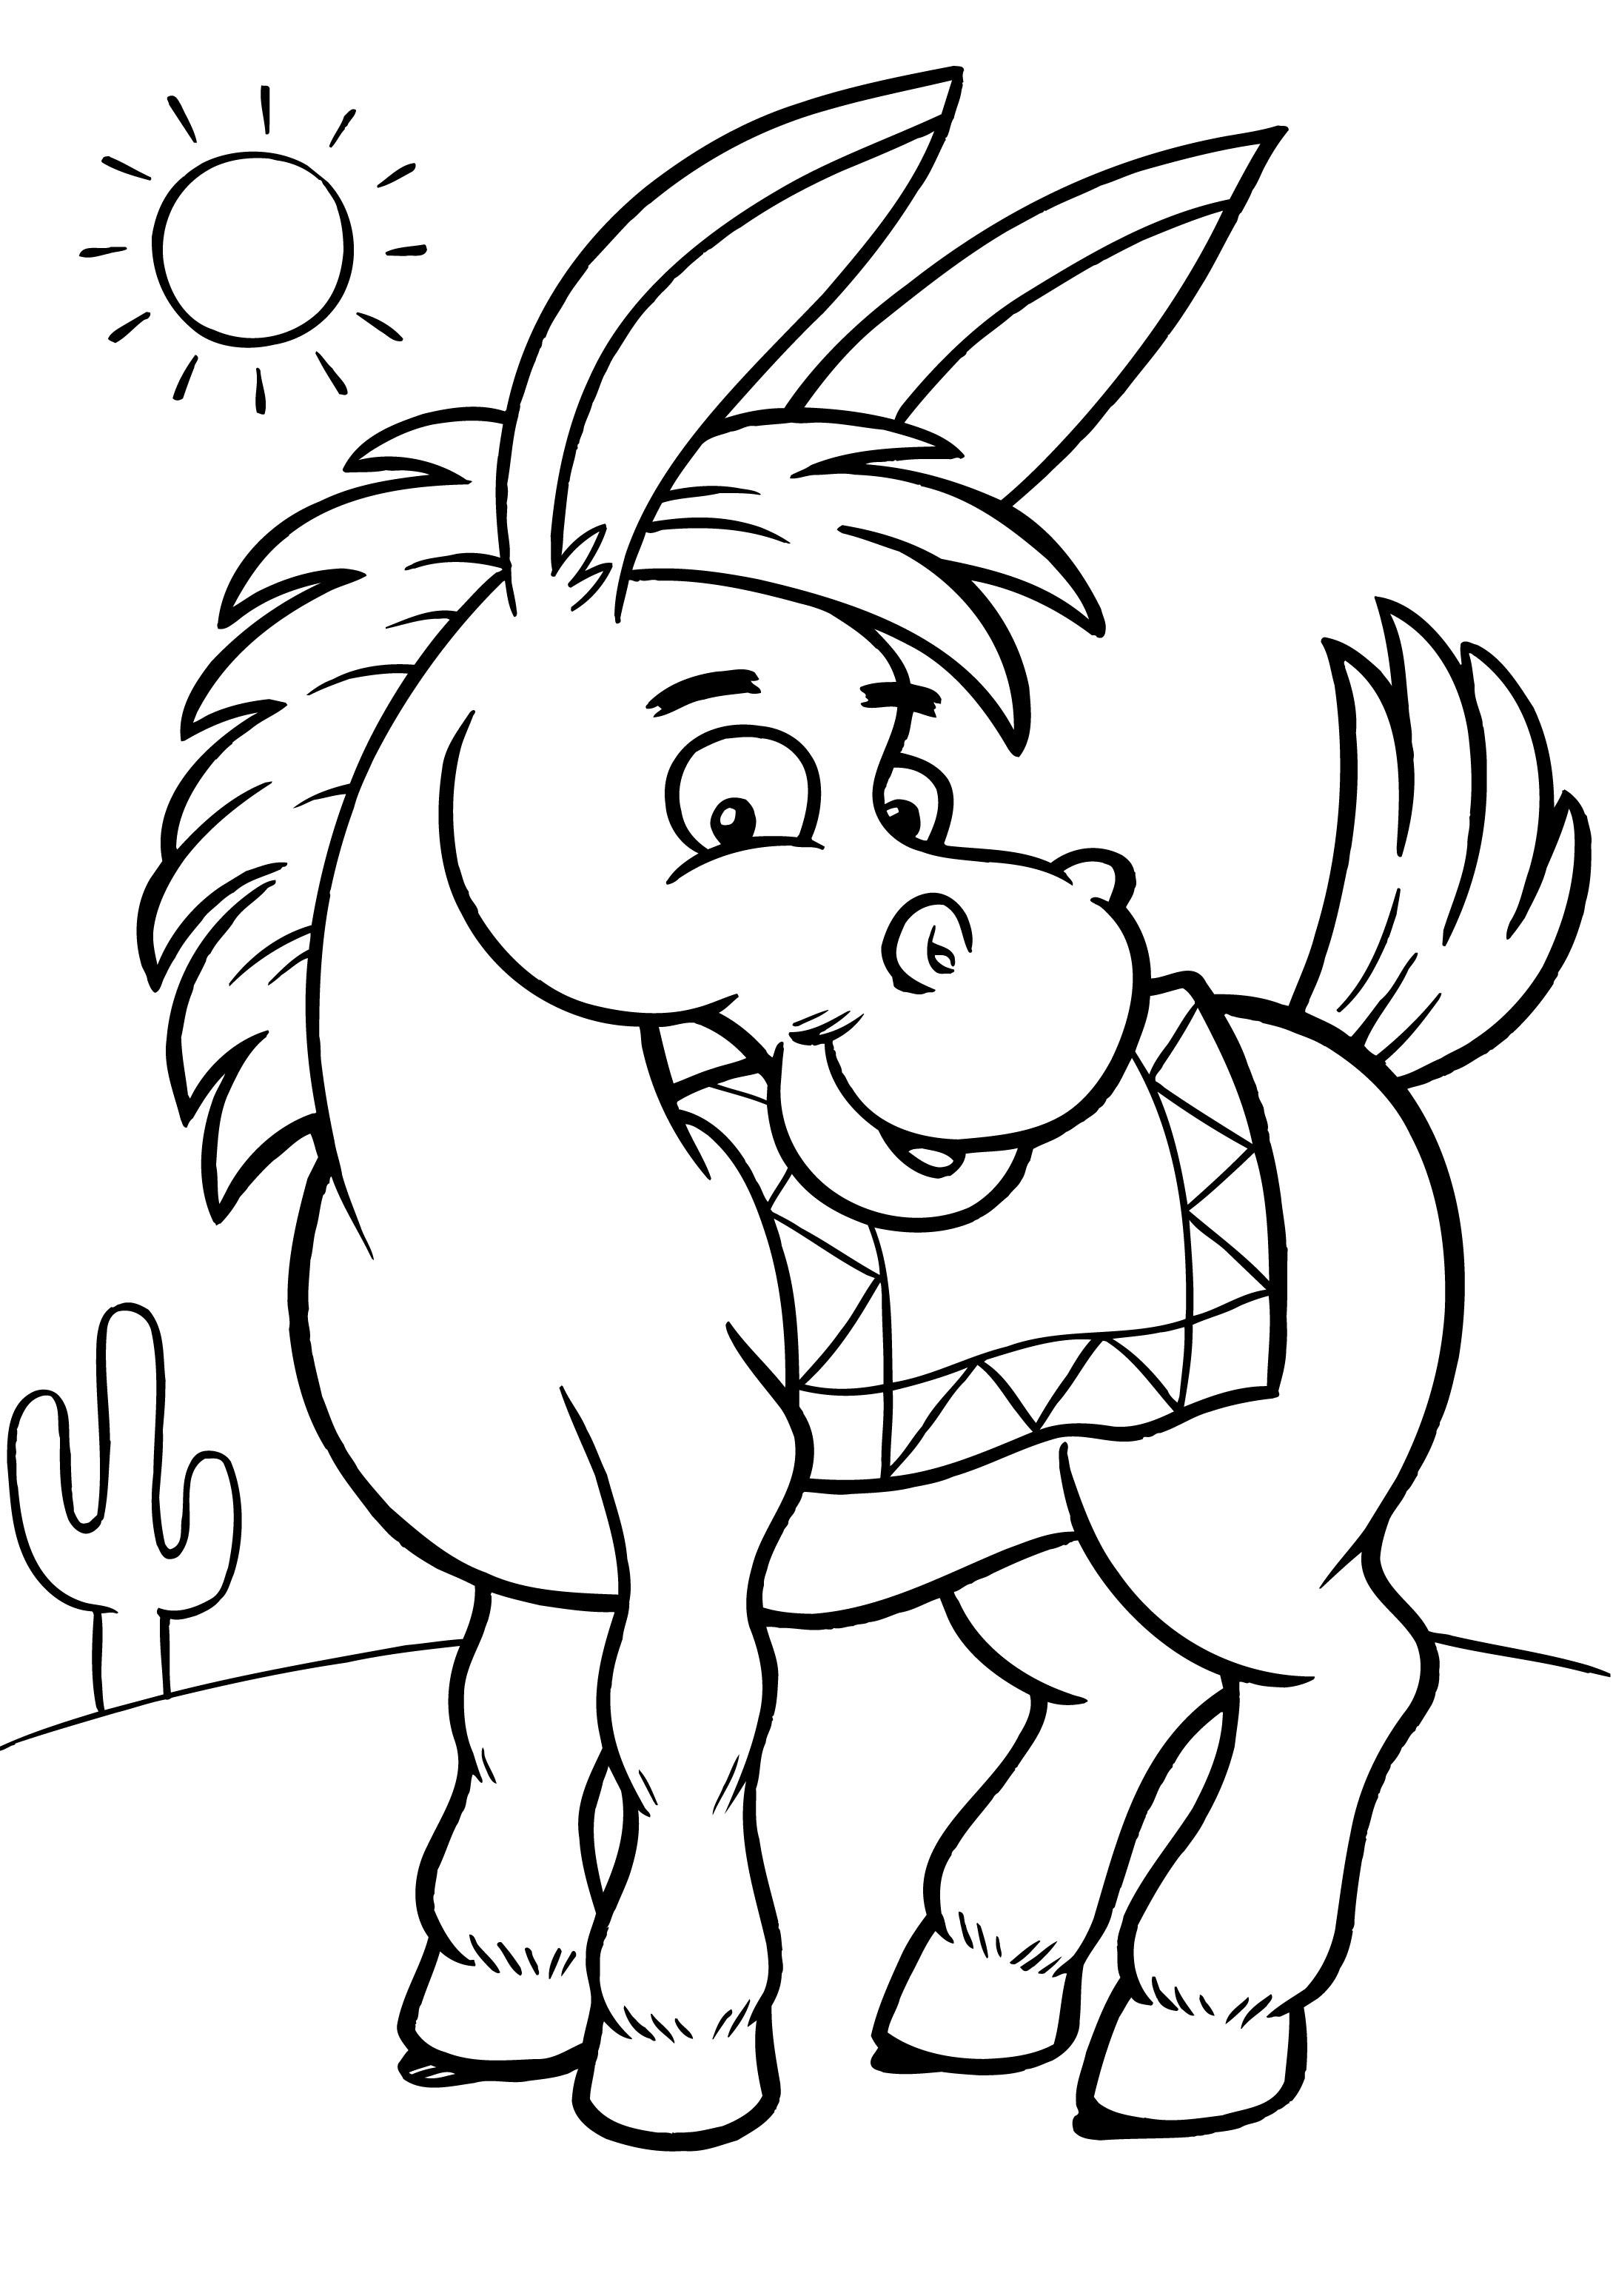 Donkey coloring #6, Download drawings